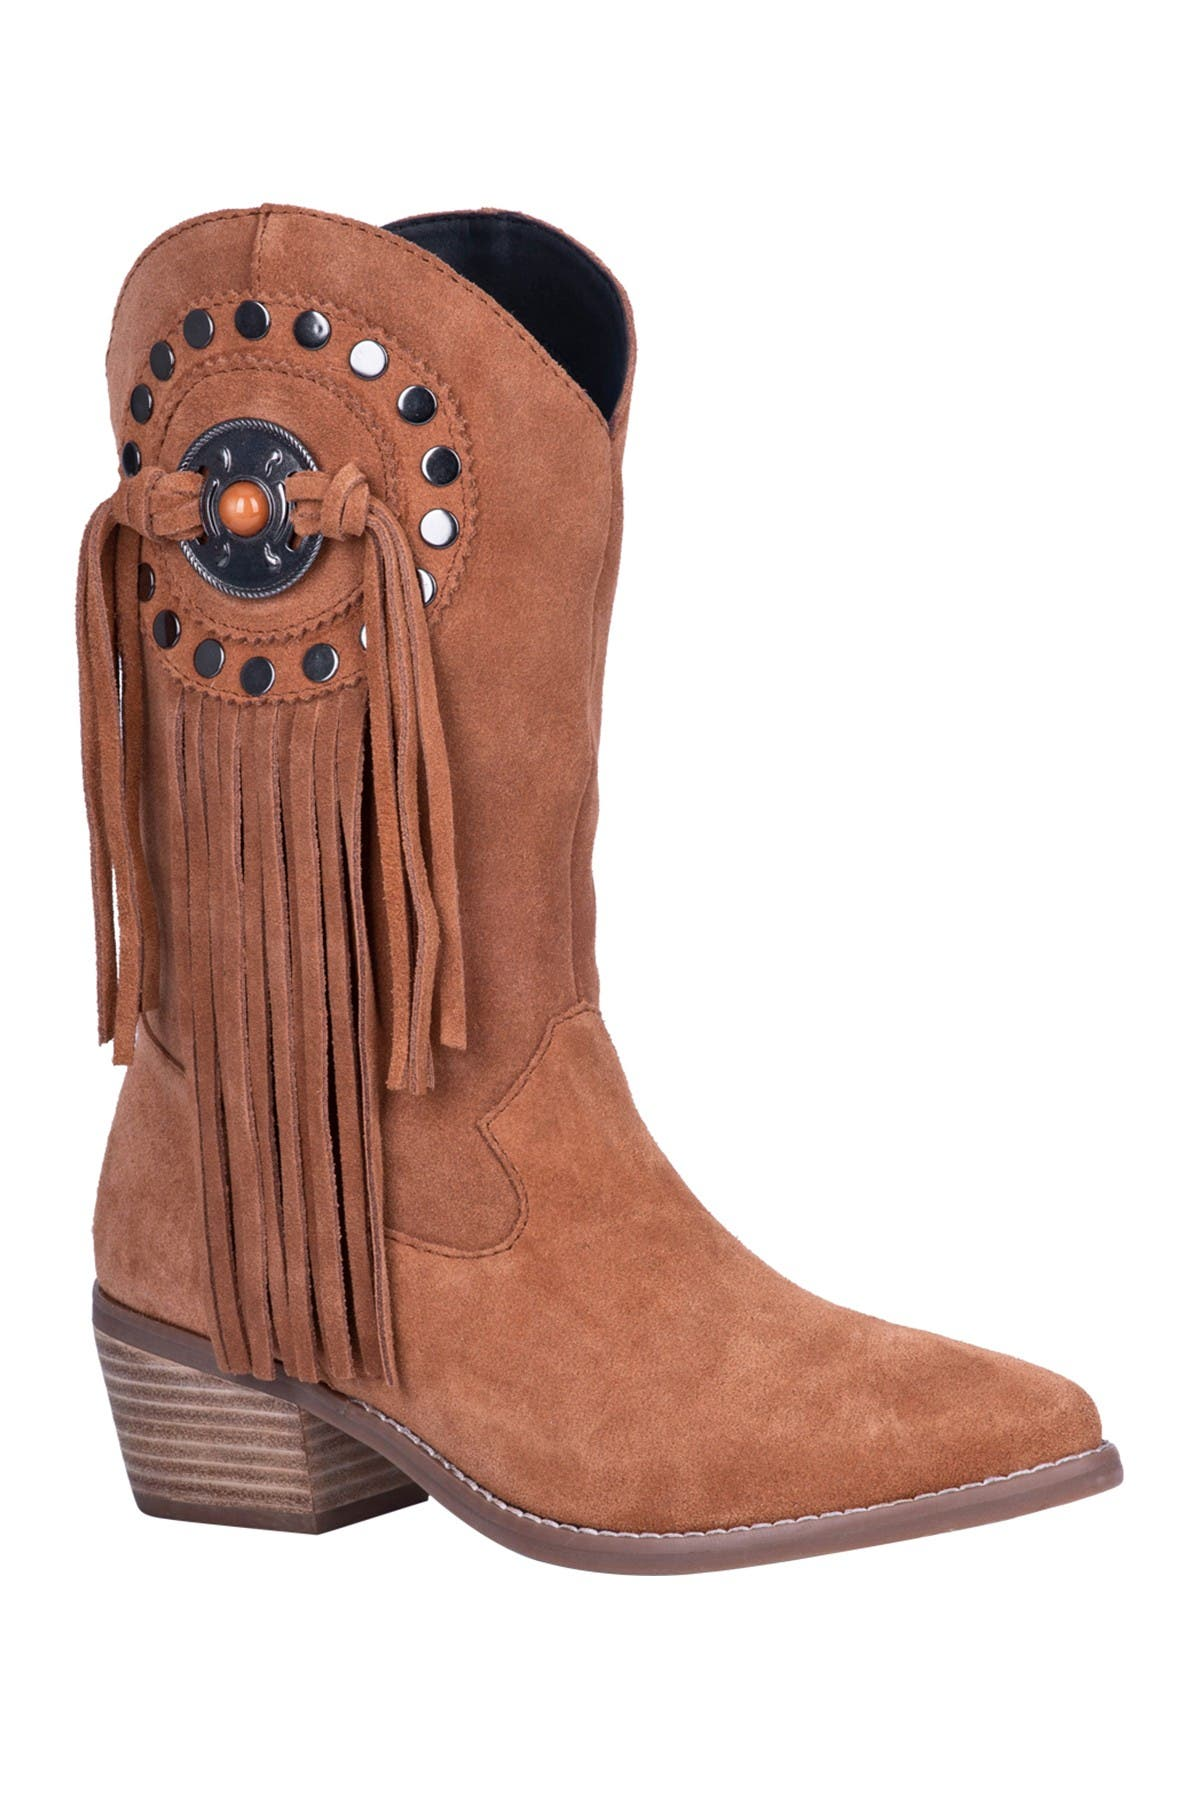 Image of DINGO Takin' Flight Suede Fringe Boot